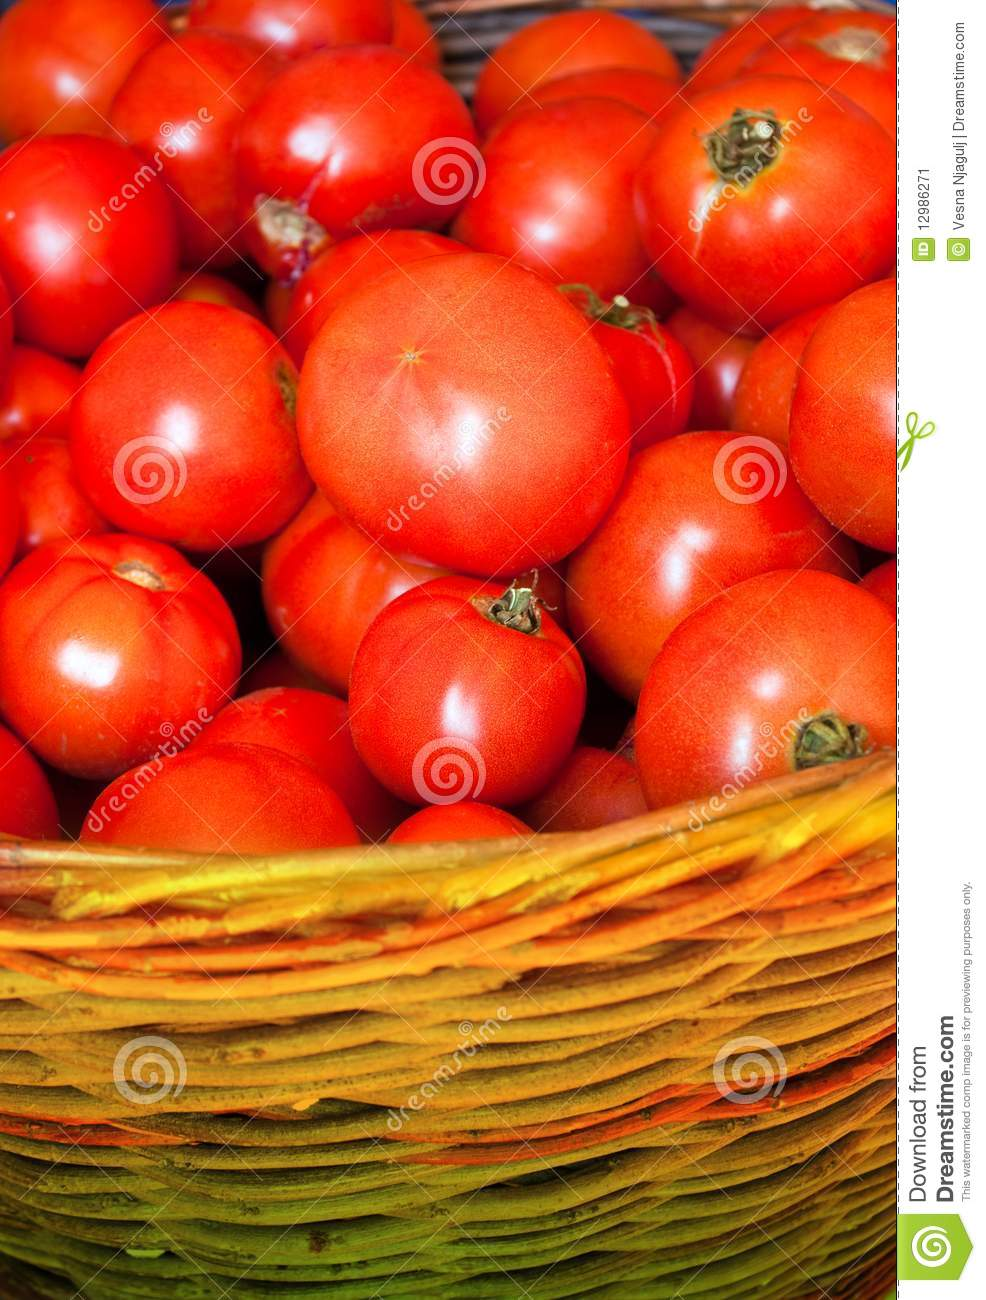 Fresh red tomatoes stock image. Image of moisture ...